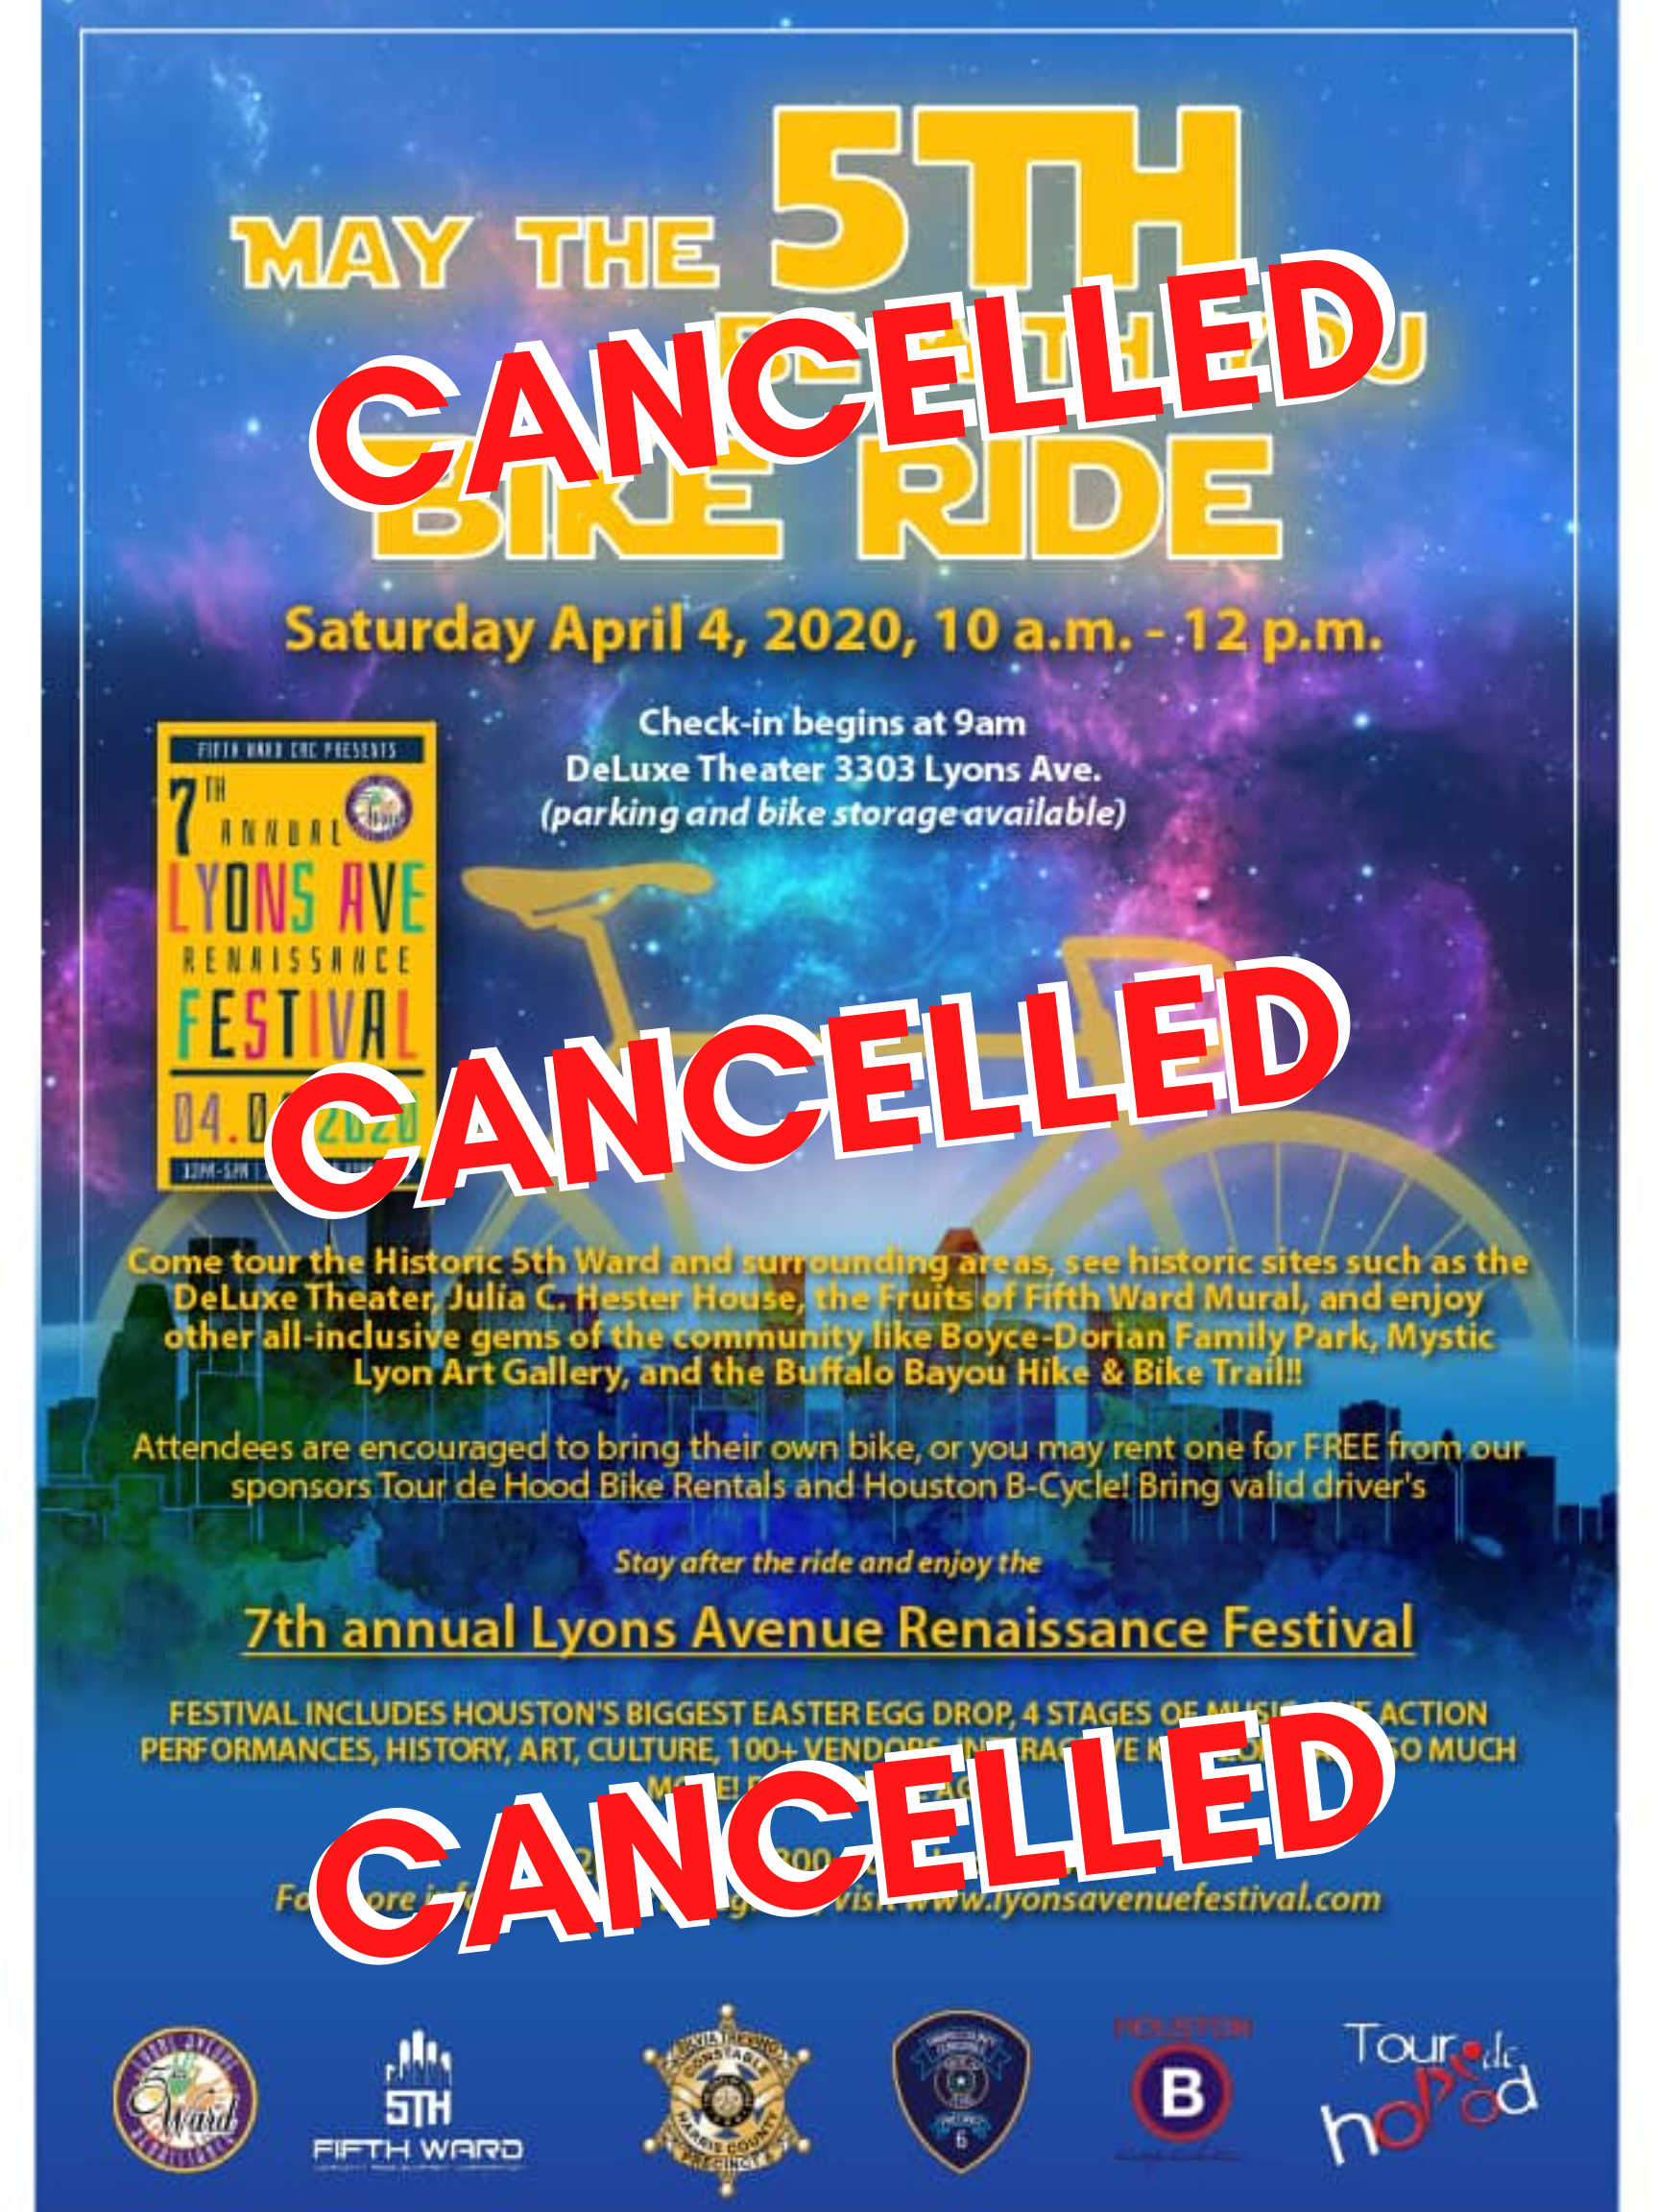 LARF 2020 Bike Ride Cancelled  (1)